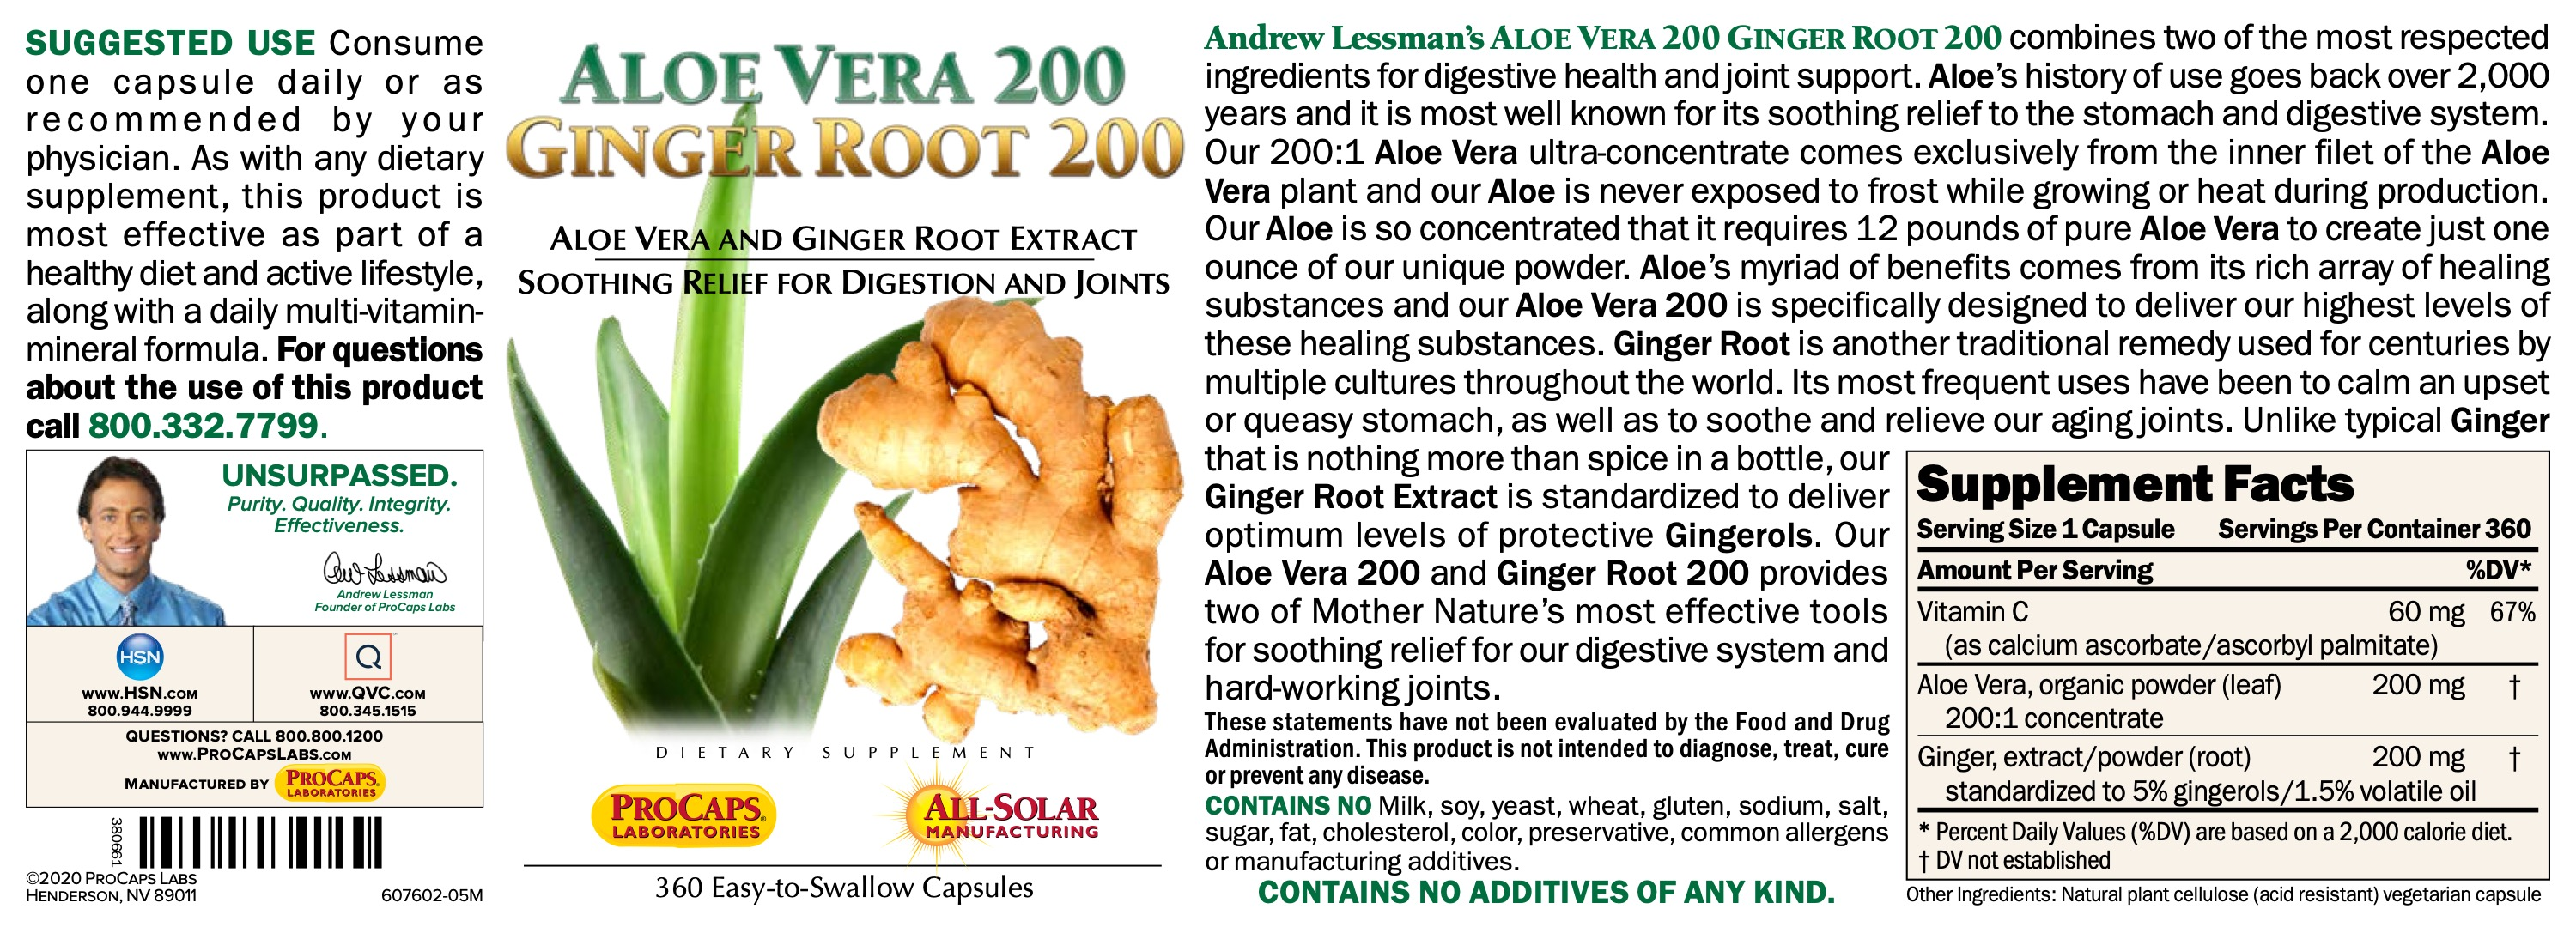 Aloe-Vera-200-Ginger-Root-200-Capsules-Digestive-Support